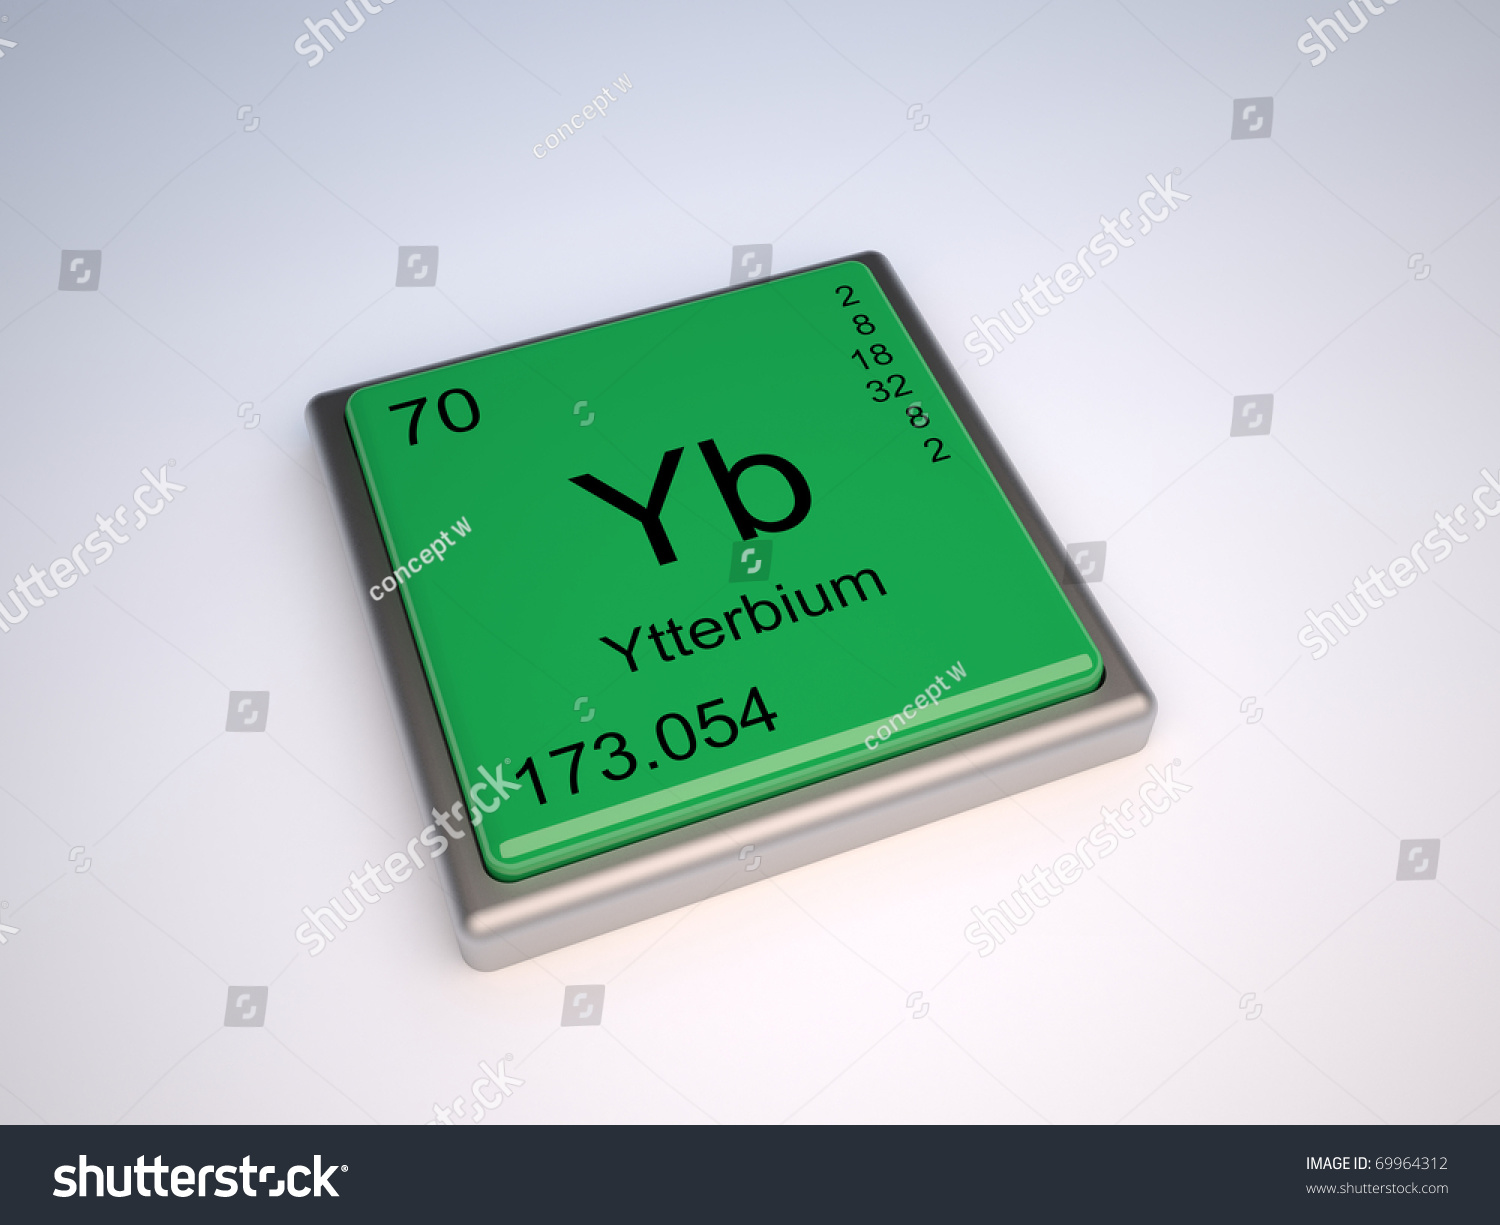 Ytterbium chemical element periodic table symbol stock ytterbium chemical element of the periodic table with symbol yb iupac urtaz Gallery